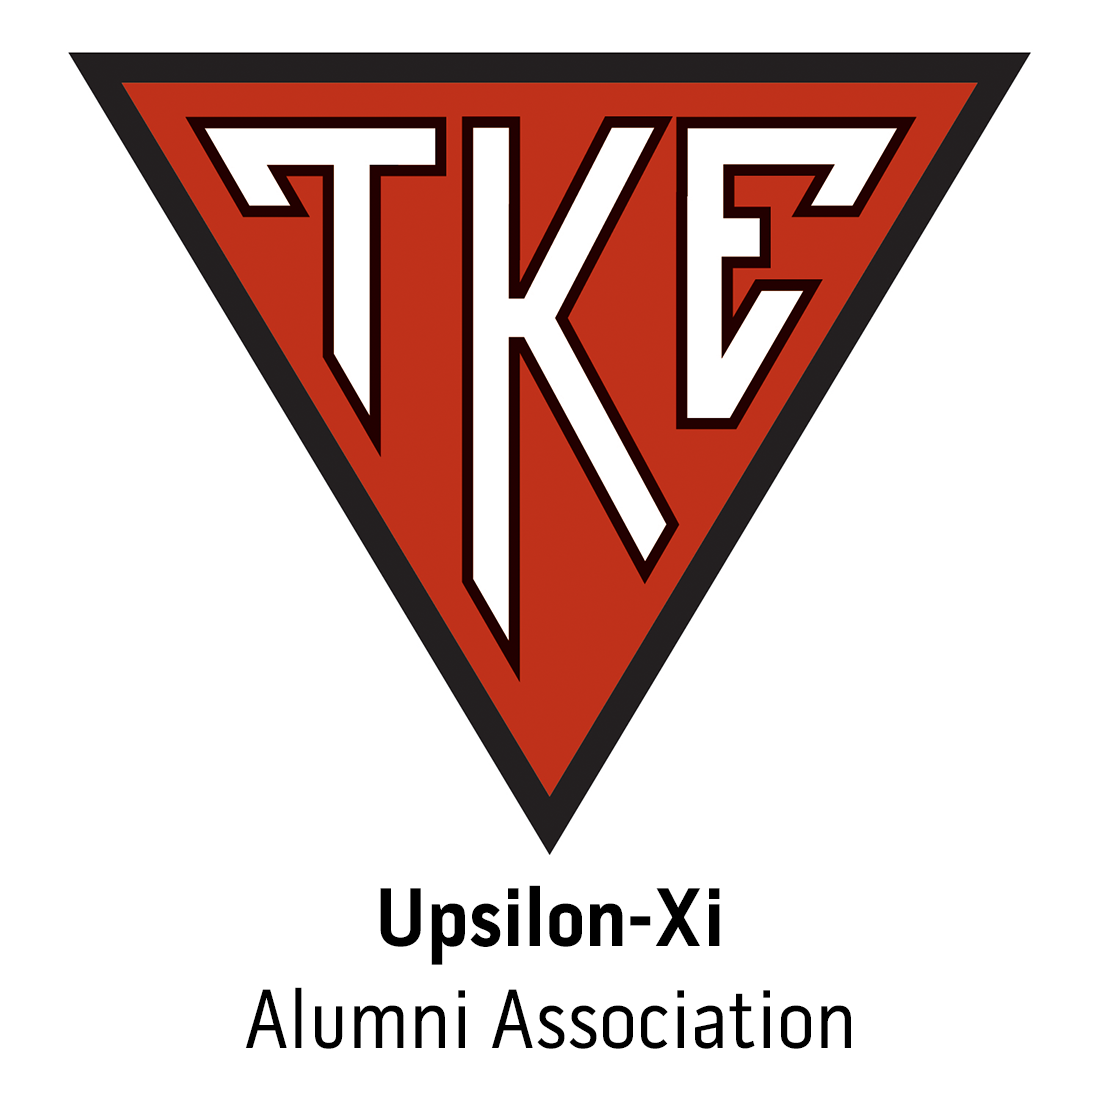 Upsilon-Xi Alumni Association for Oakland University